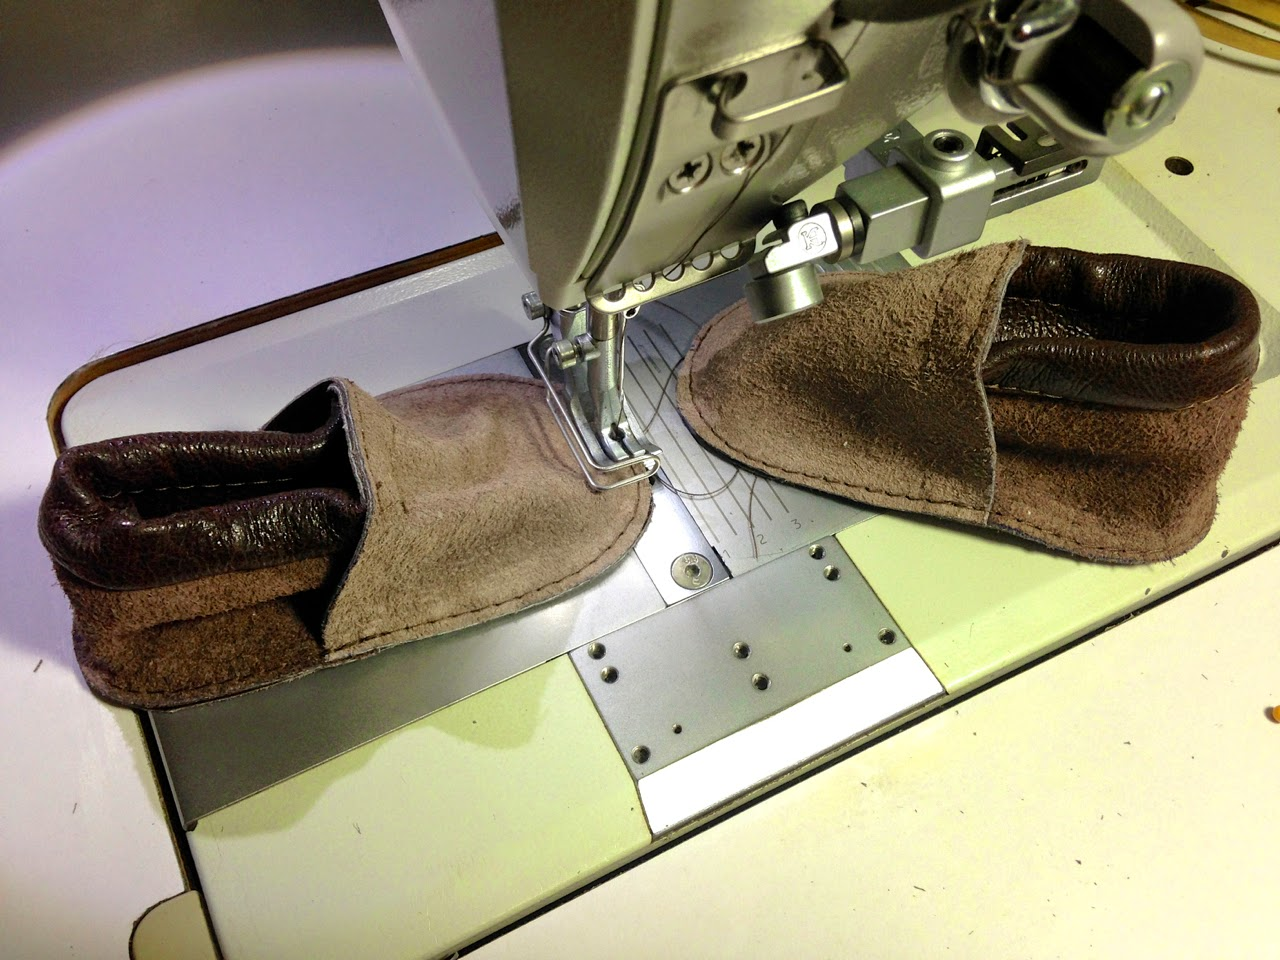 The Project Lady - Leather Couch? Nah, Leather Baby Moccasins!